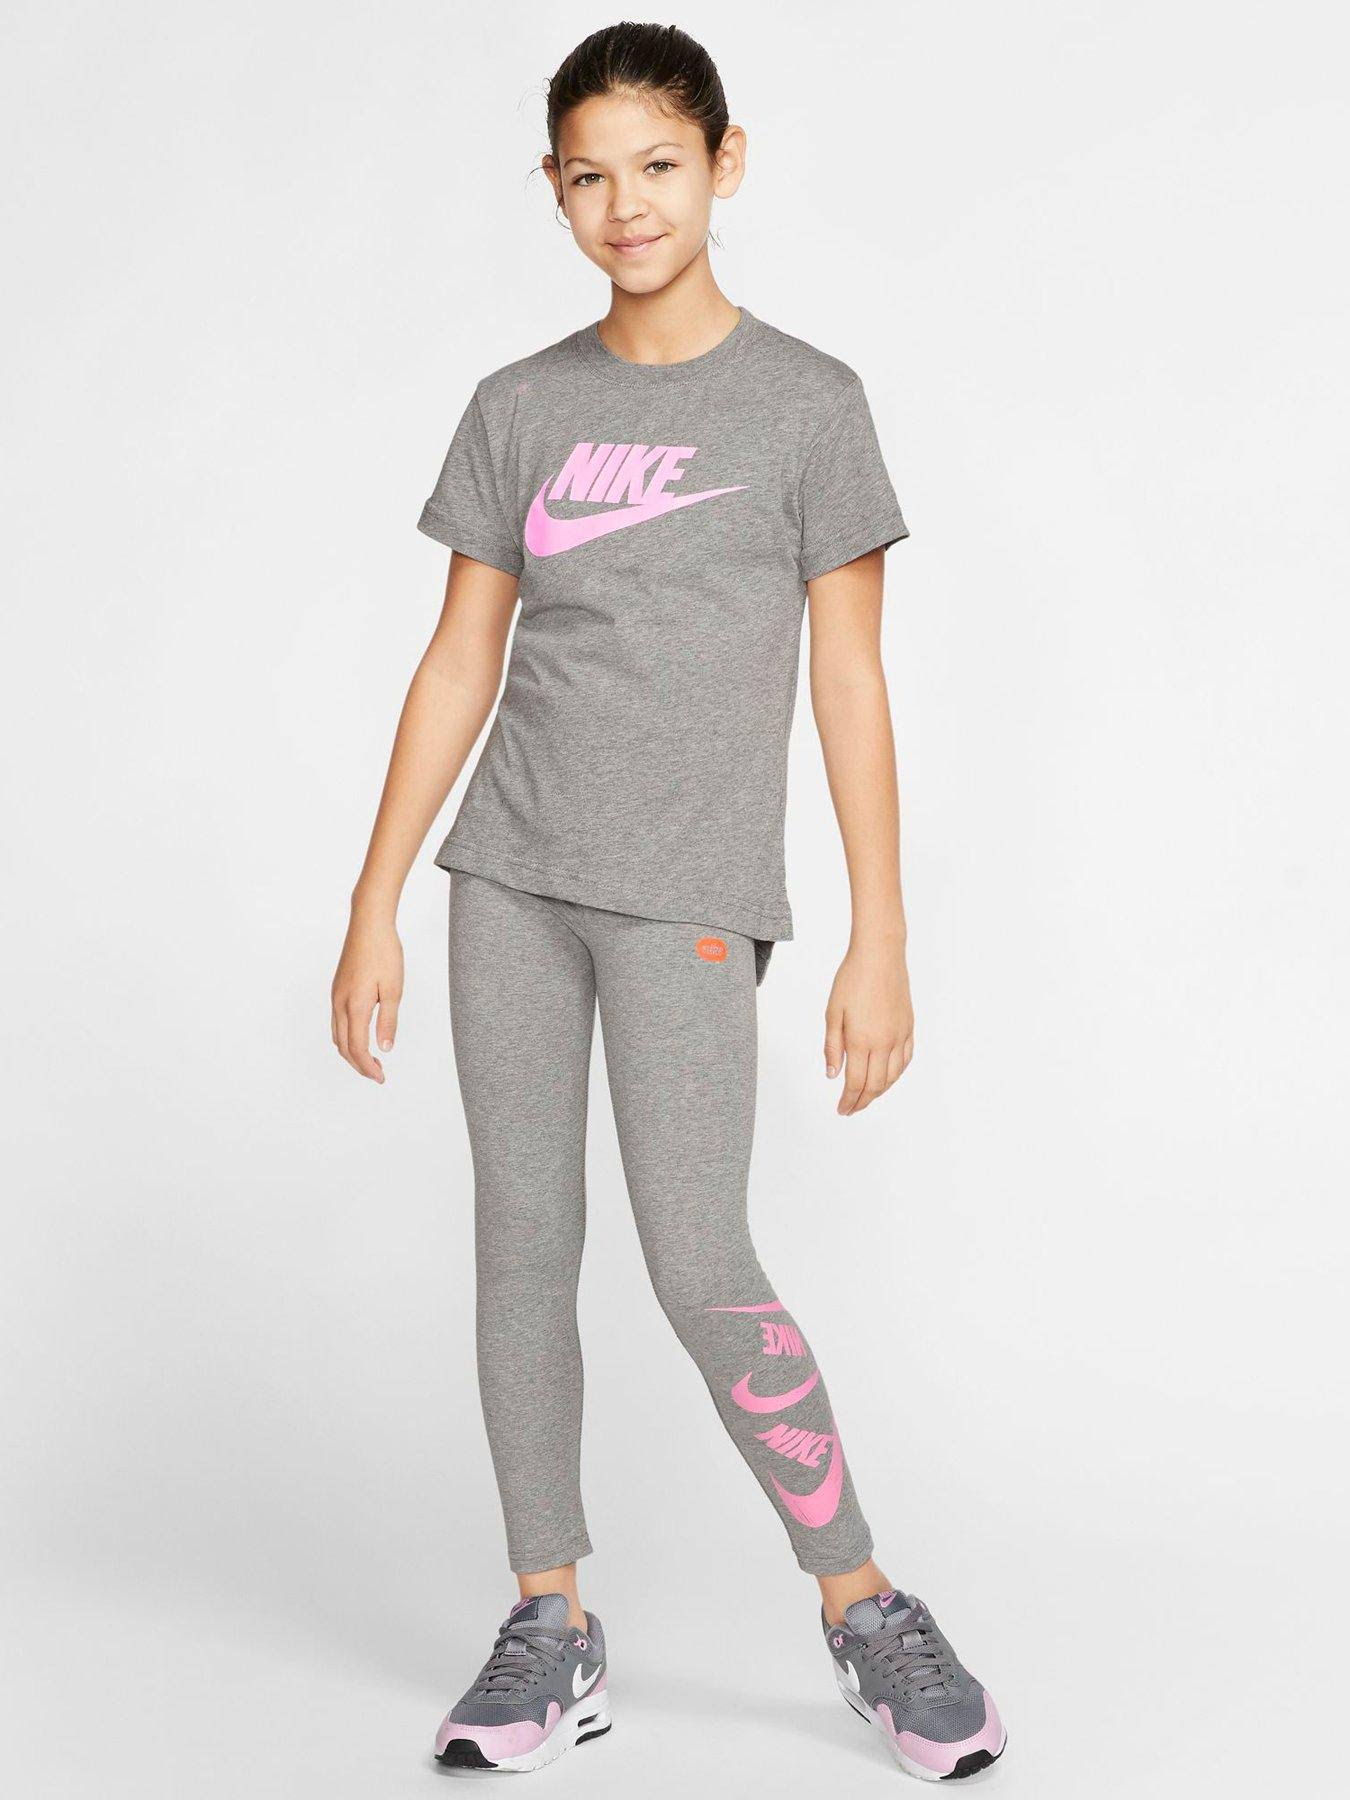 Nike Sportswear Older Girls Futura T-Shirt, Grey/Pink, Size 8-10 Years=S, Women